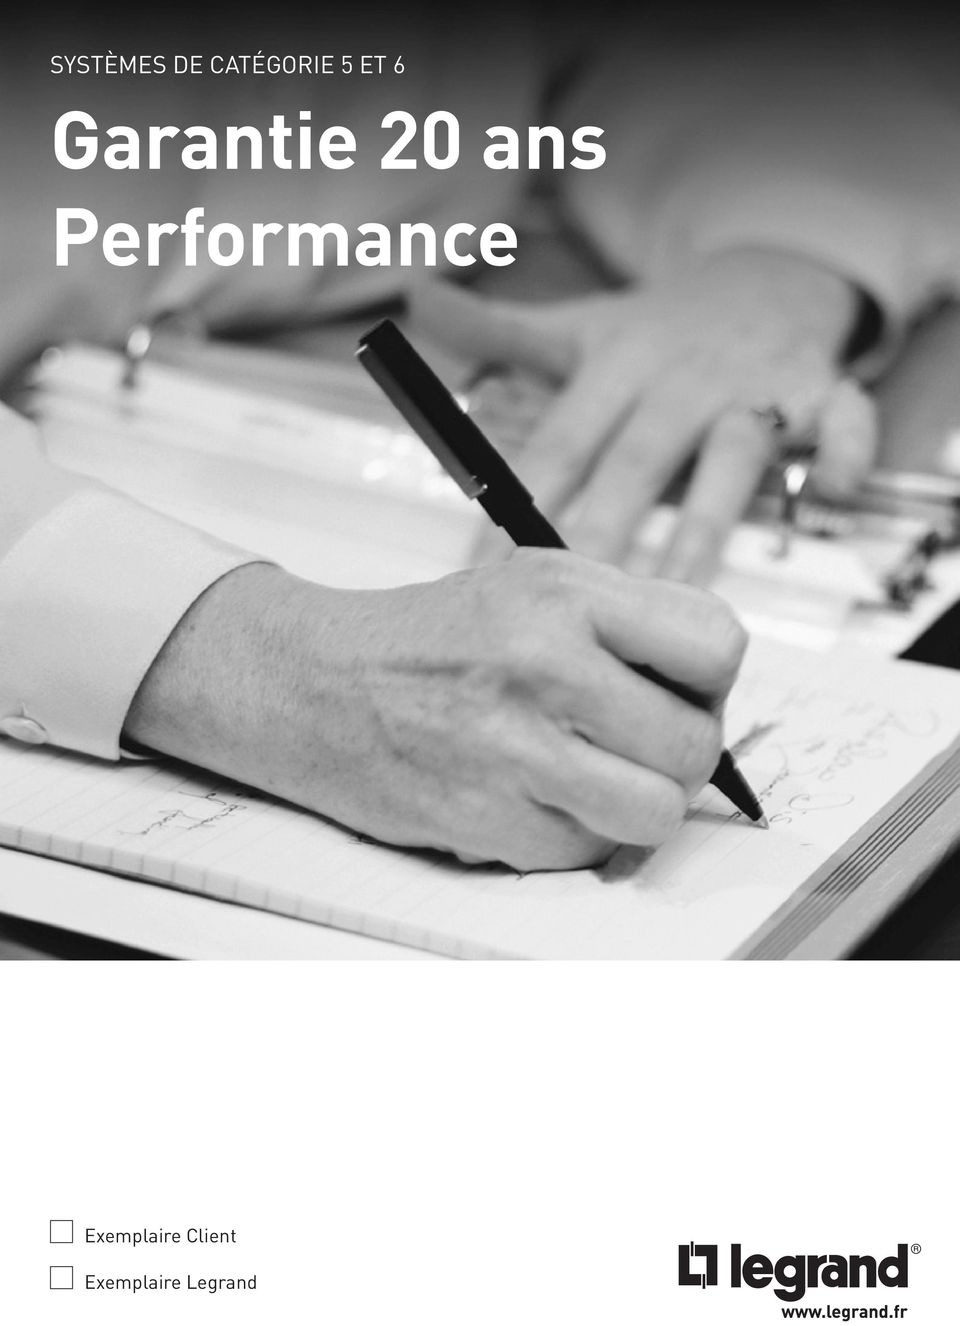 Performance Exemplaire